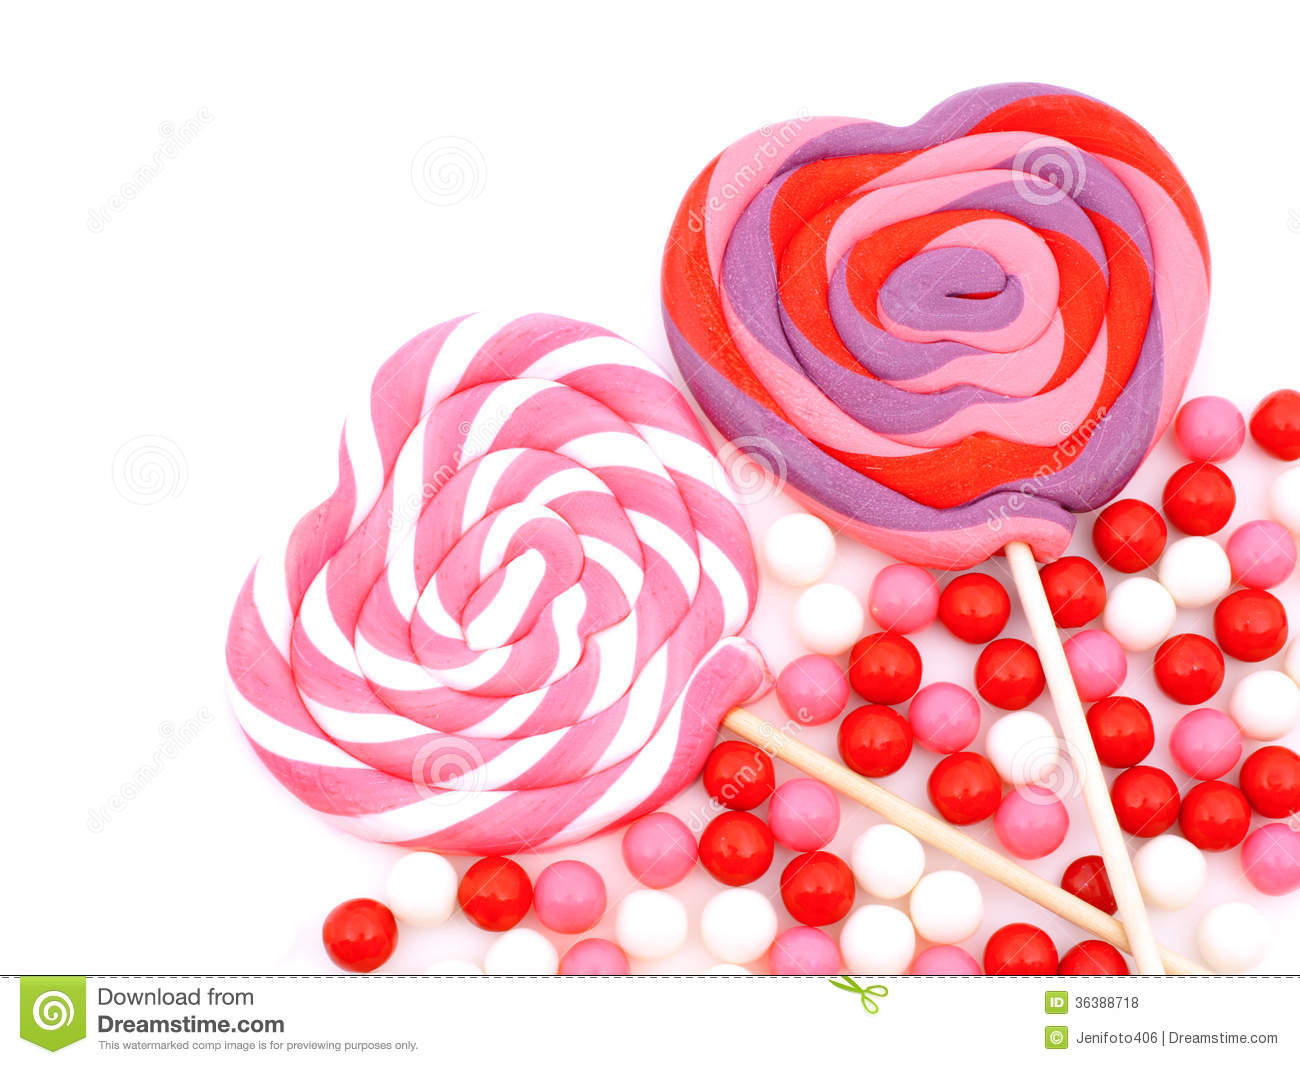 valentines-day-candy-heart-shaped-lollipops-corner-border-36388718 jpgValentines Day Candy Borders Free